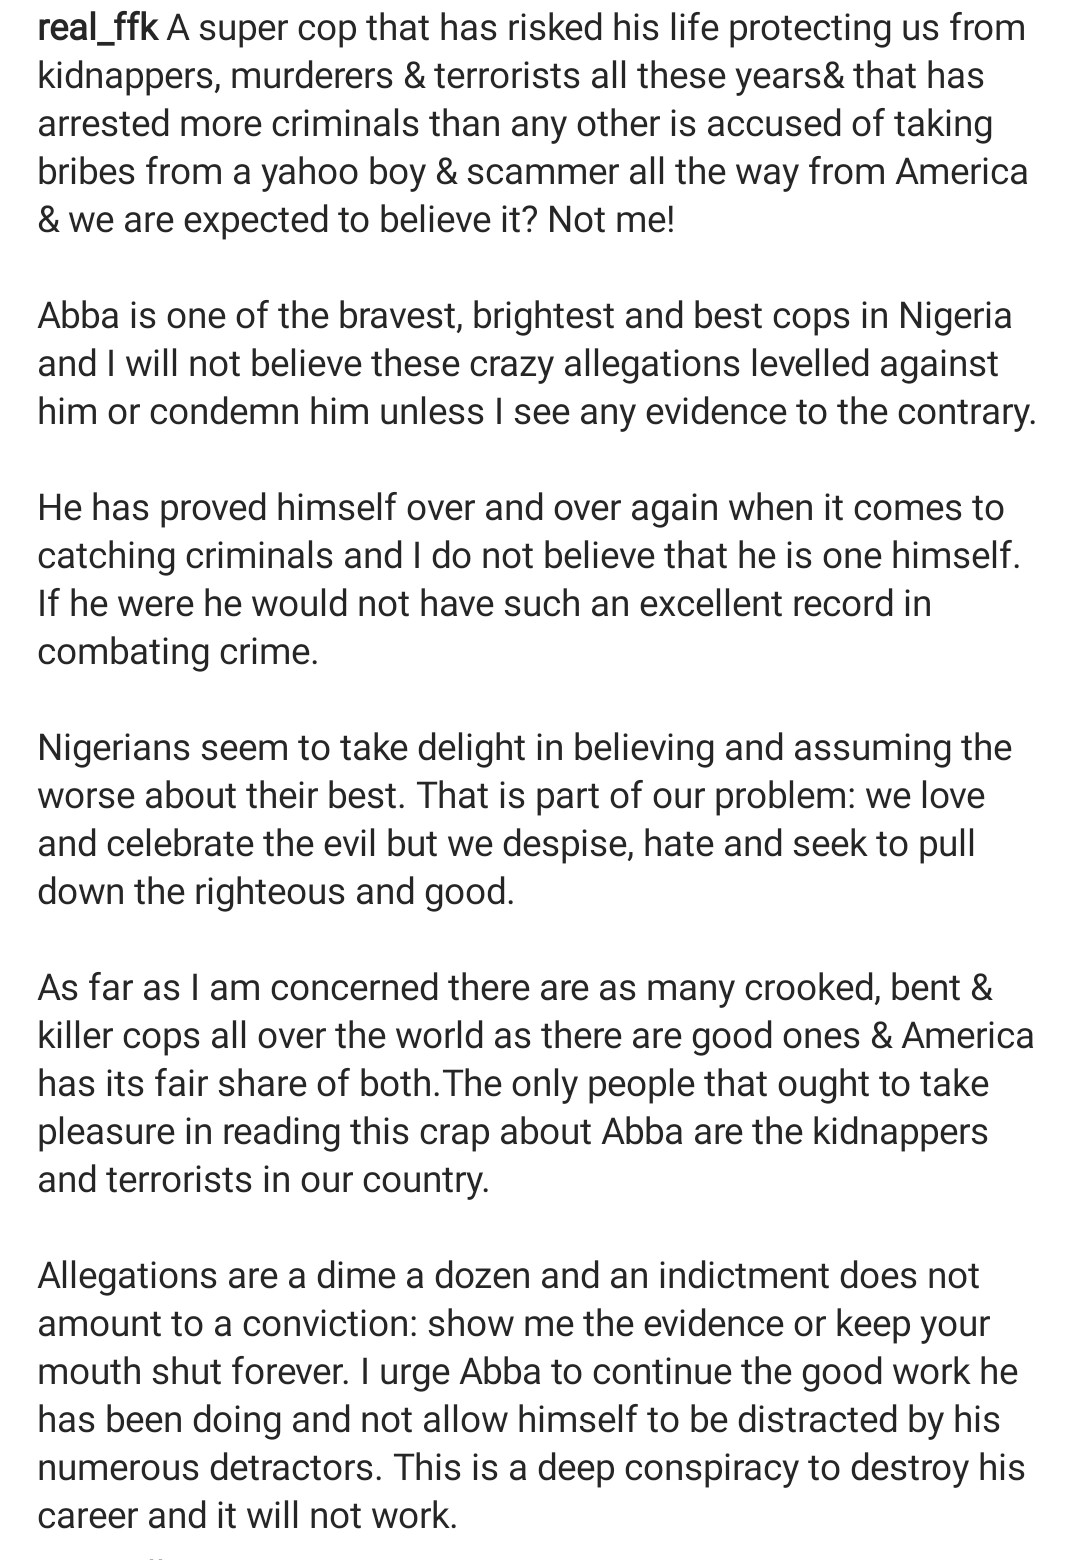 """""""Abba is one of the bravest cops in Nigeria and I will not believe these crazy allegations levelled against him - FFK defends Abba Kyari after his indictment in the Hushpuppi fraud case"""